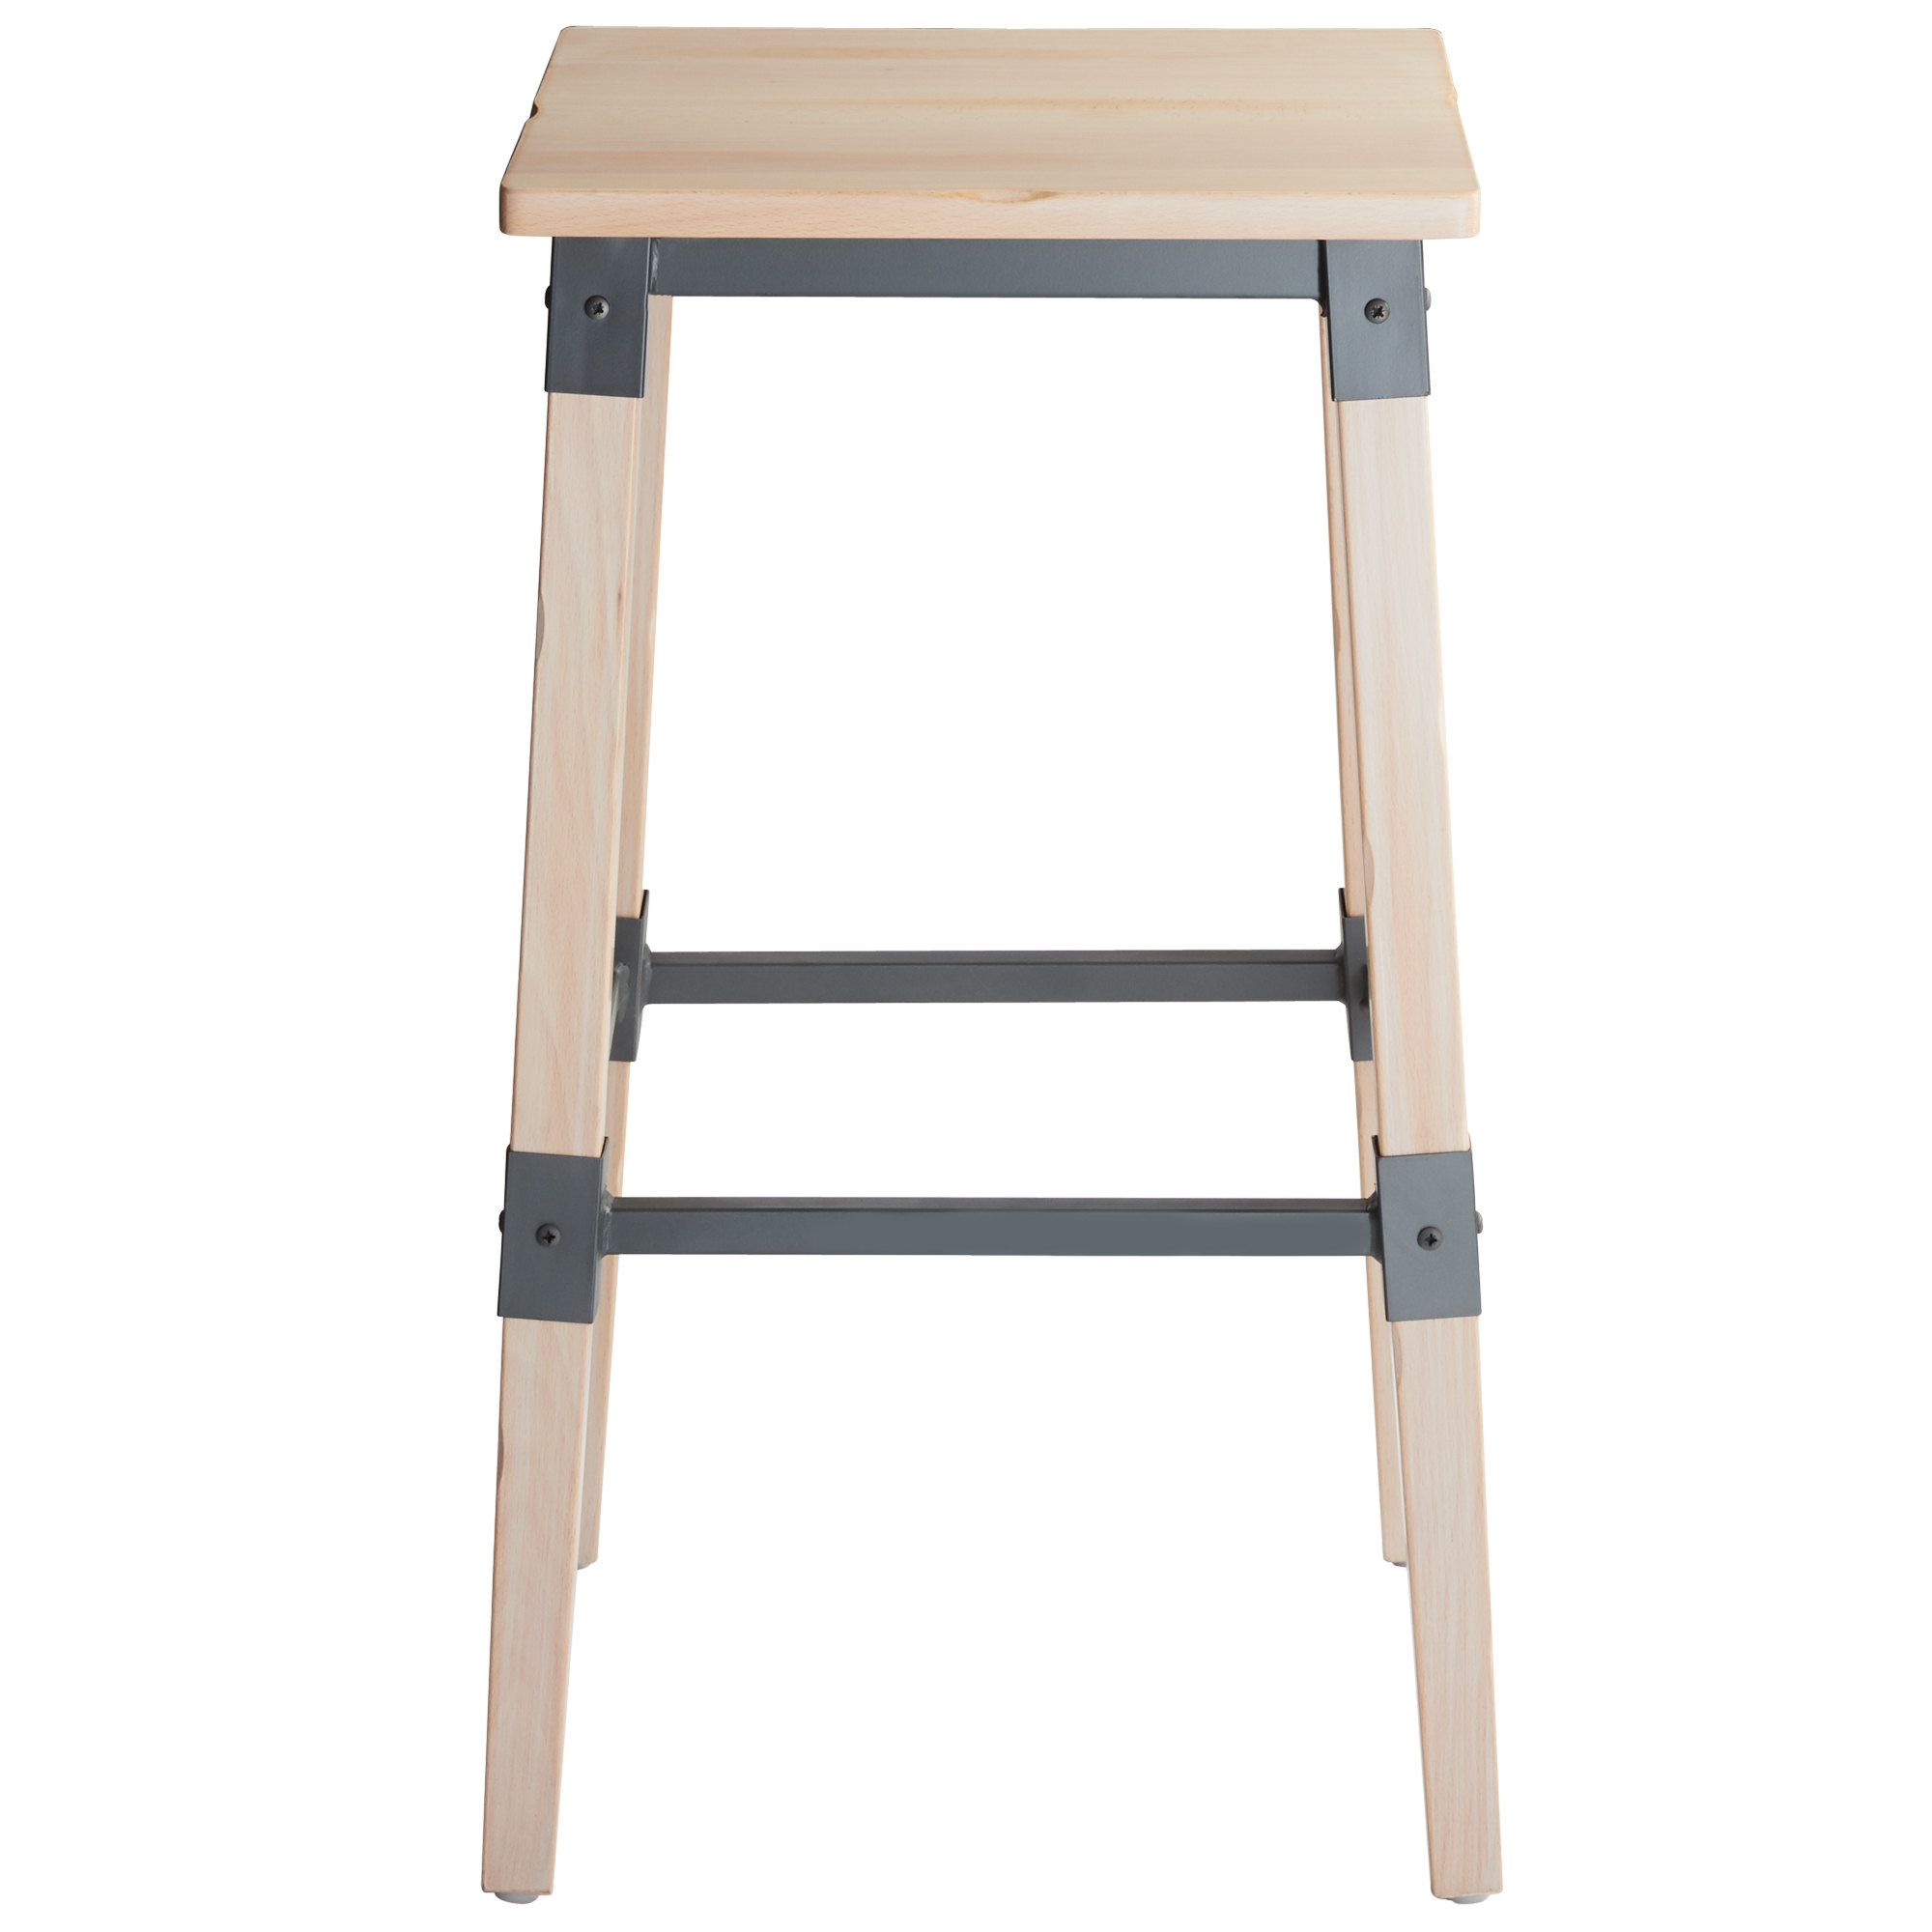 #76 - Rustic Industrial Style Backless Bar Stool with White Wash Finish